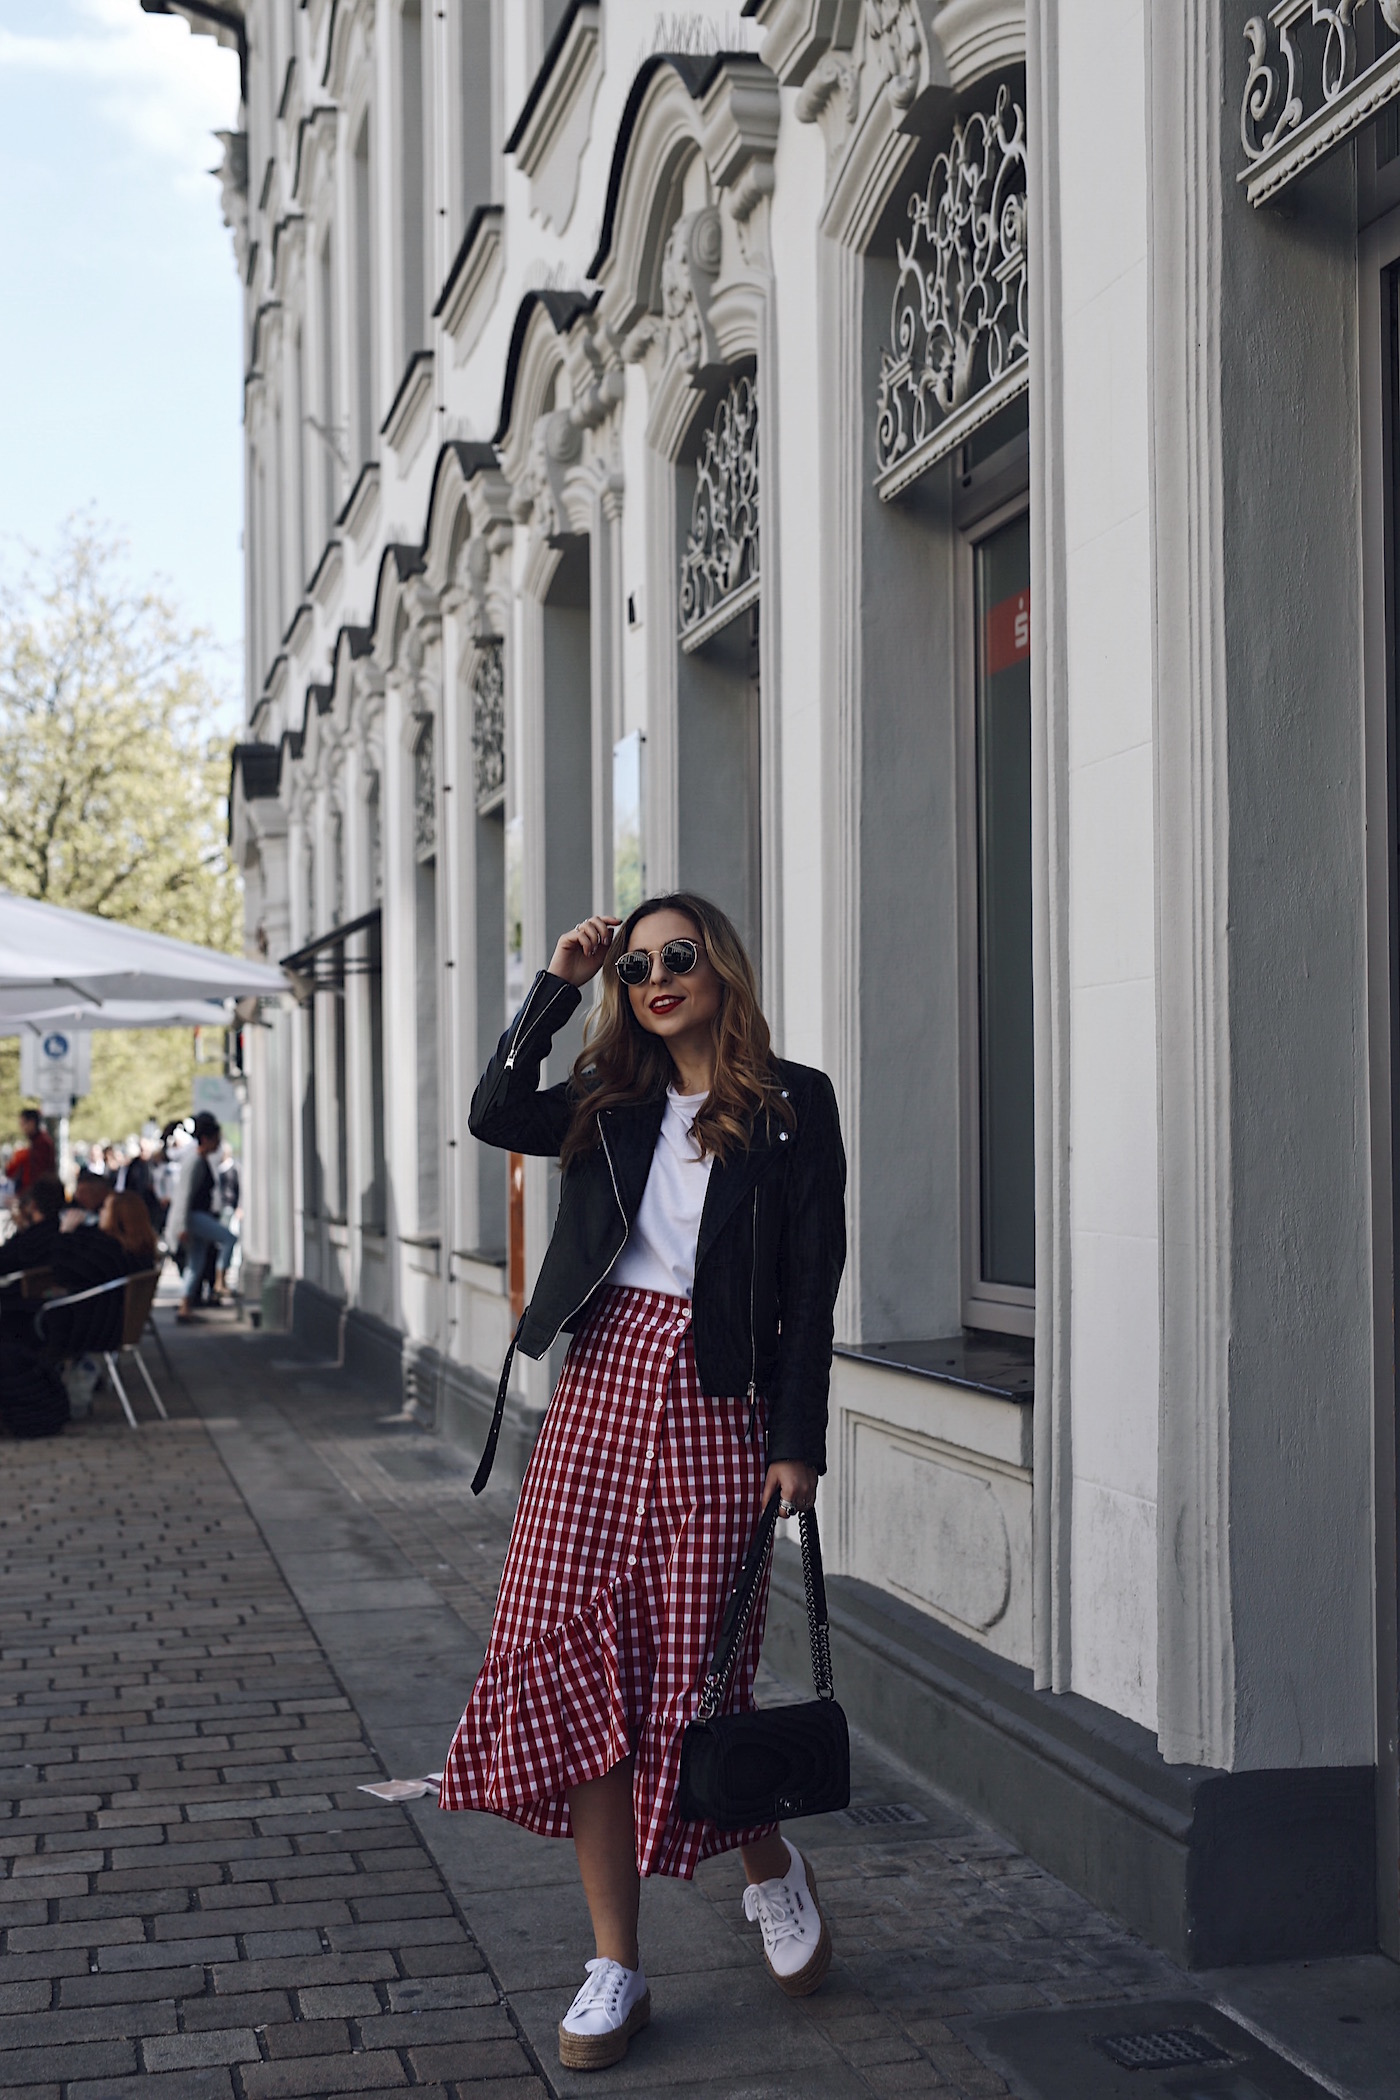 Summer Skirt Trends 2017 | Want Get Repeat Fashion Blog Nürnberg Deutschland